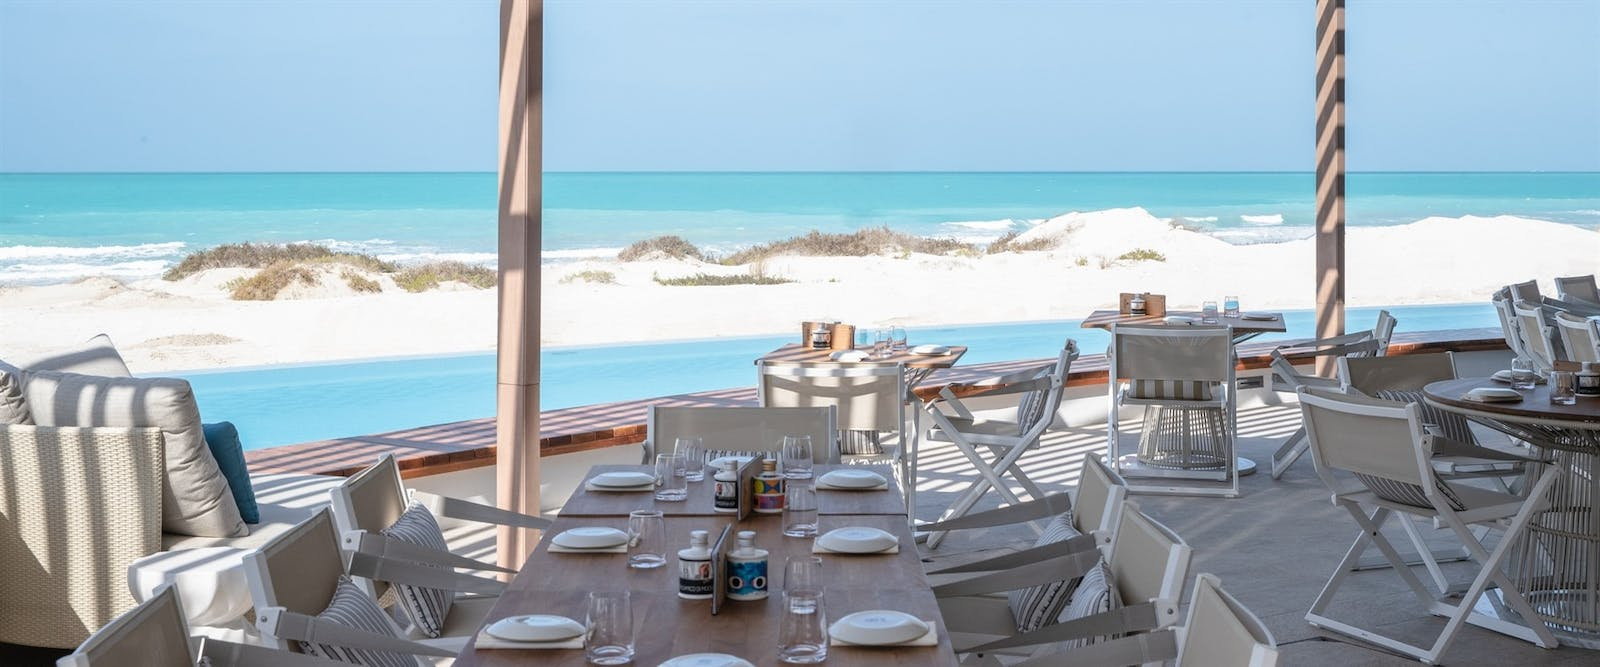 Mare Mare Restaurant at Jumeirah at Saadiyat Island Resort, Abu Dhabi